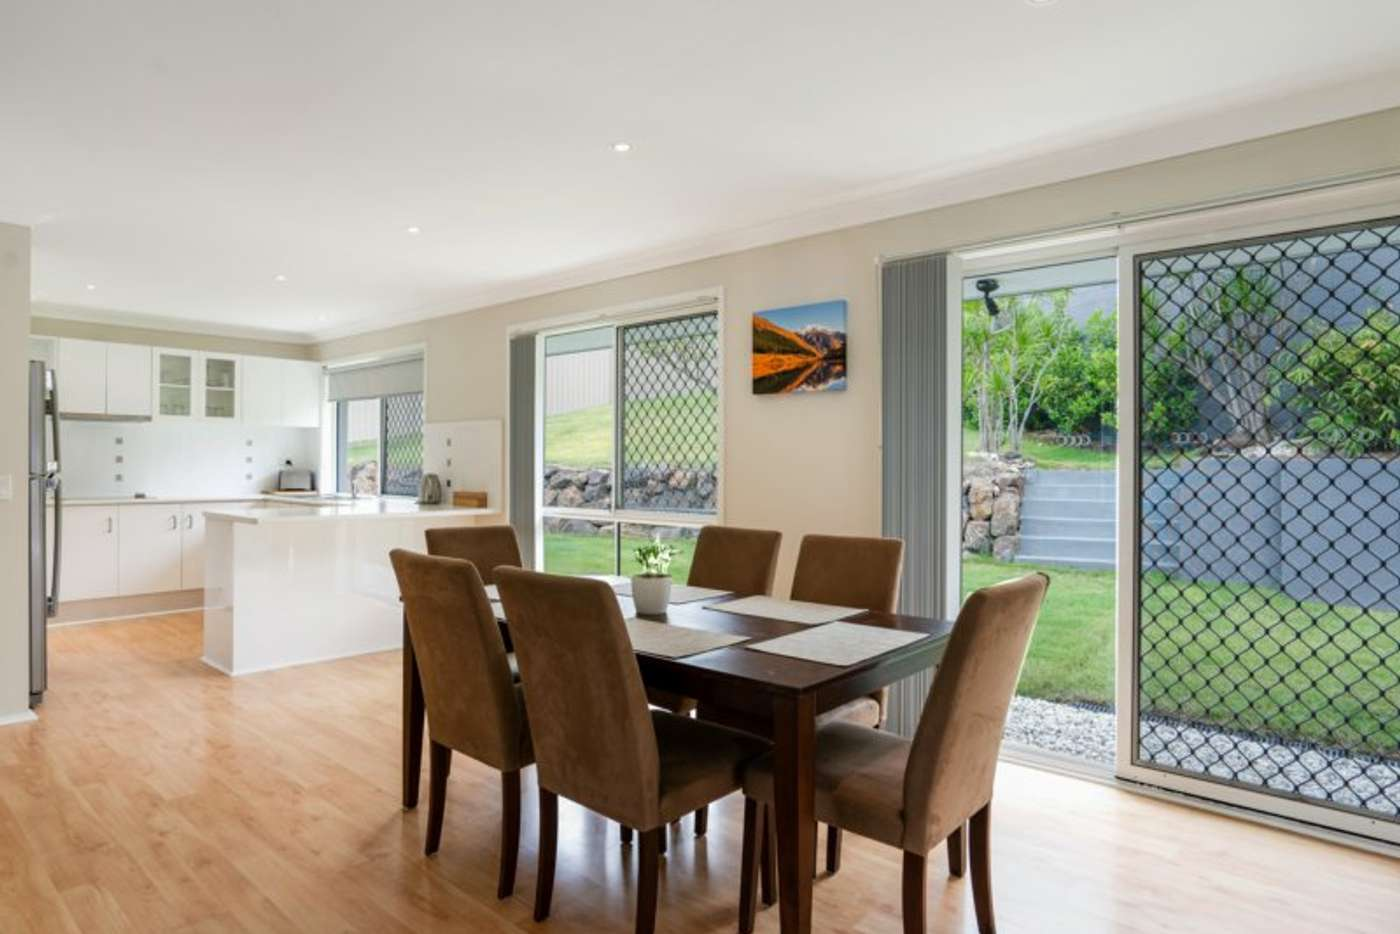 Fifth view of Homely house listing, 12 Mataranka Drive, Worongary QLD 4213